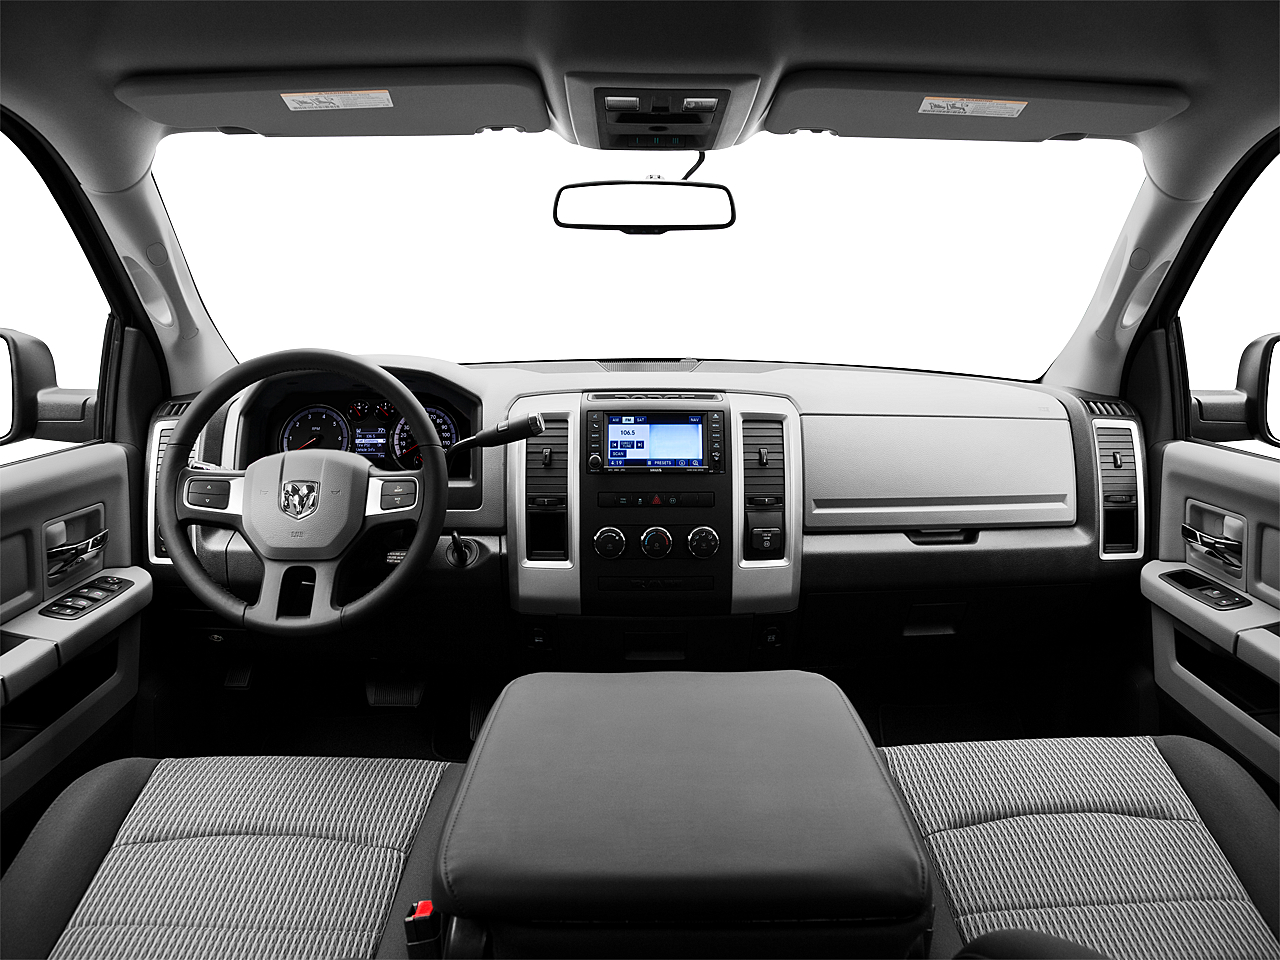 2011 Ram Trucks Ram 1500 SLT, centered wide dash shot